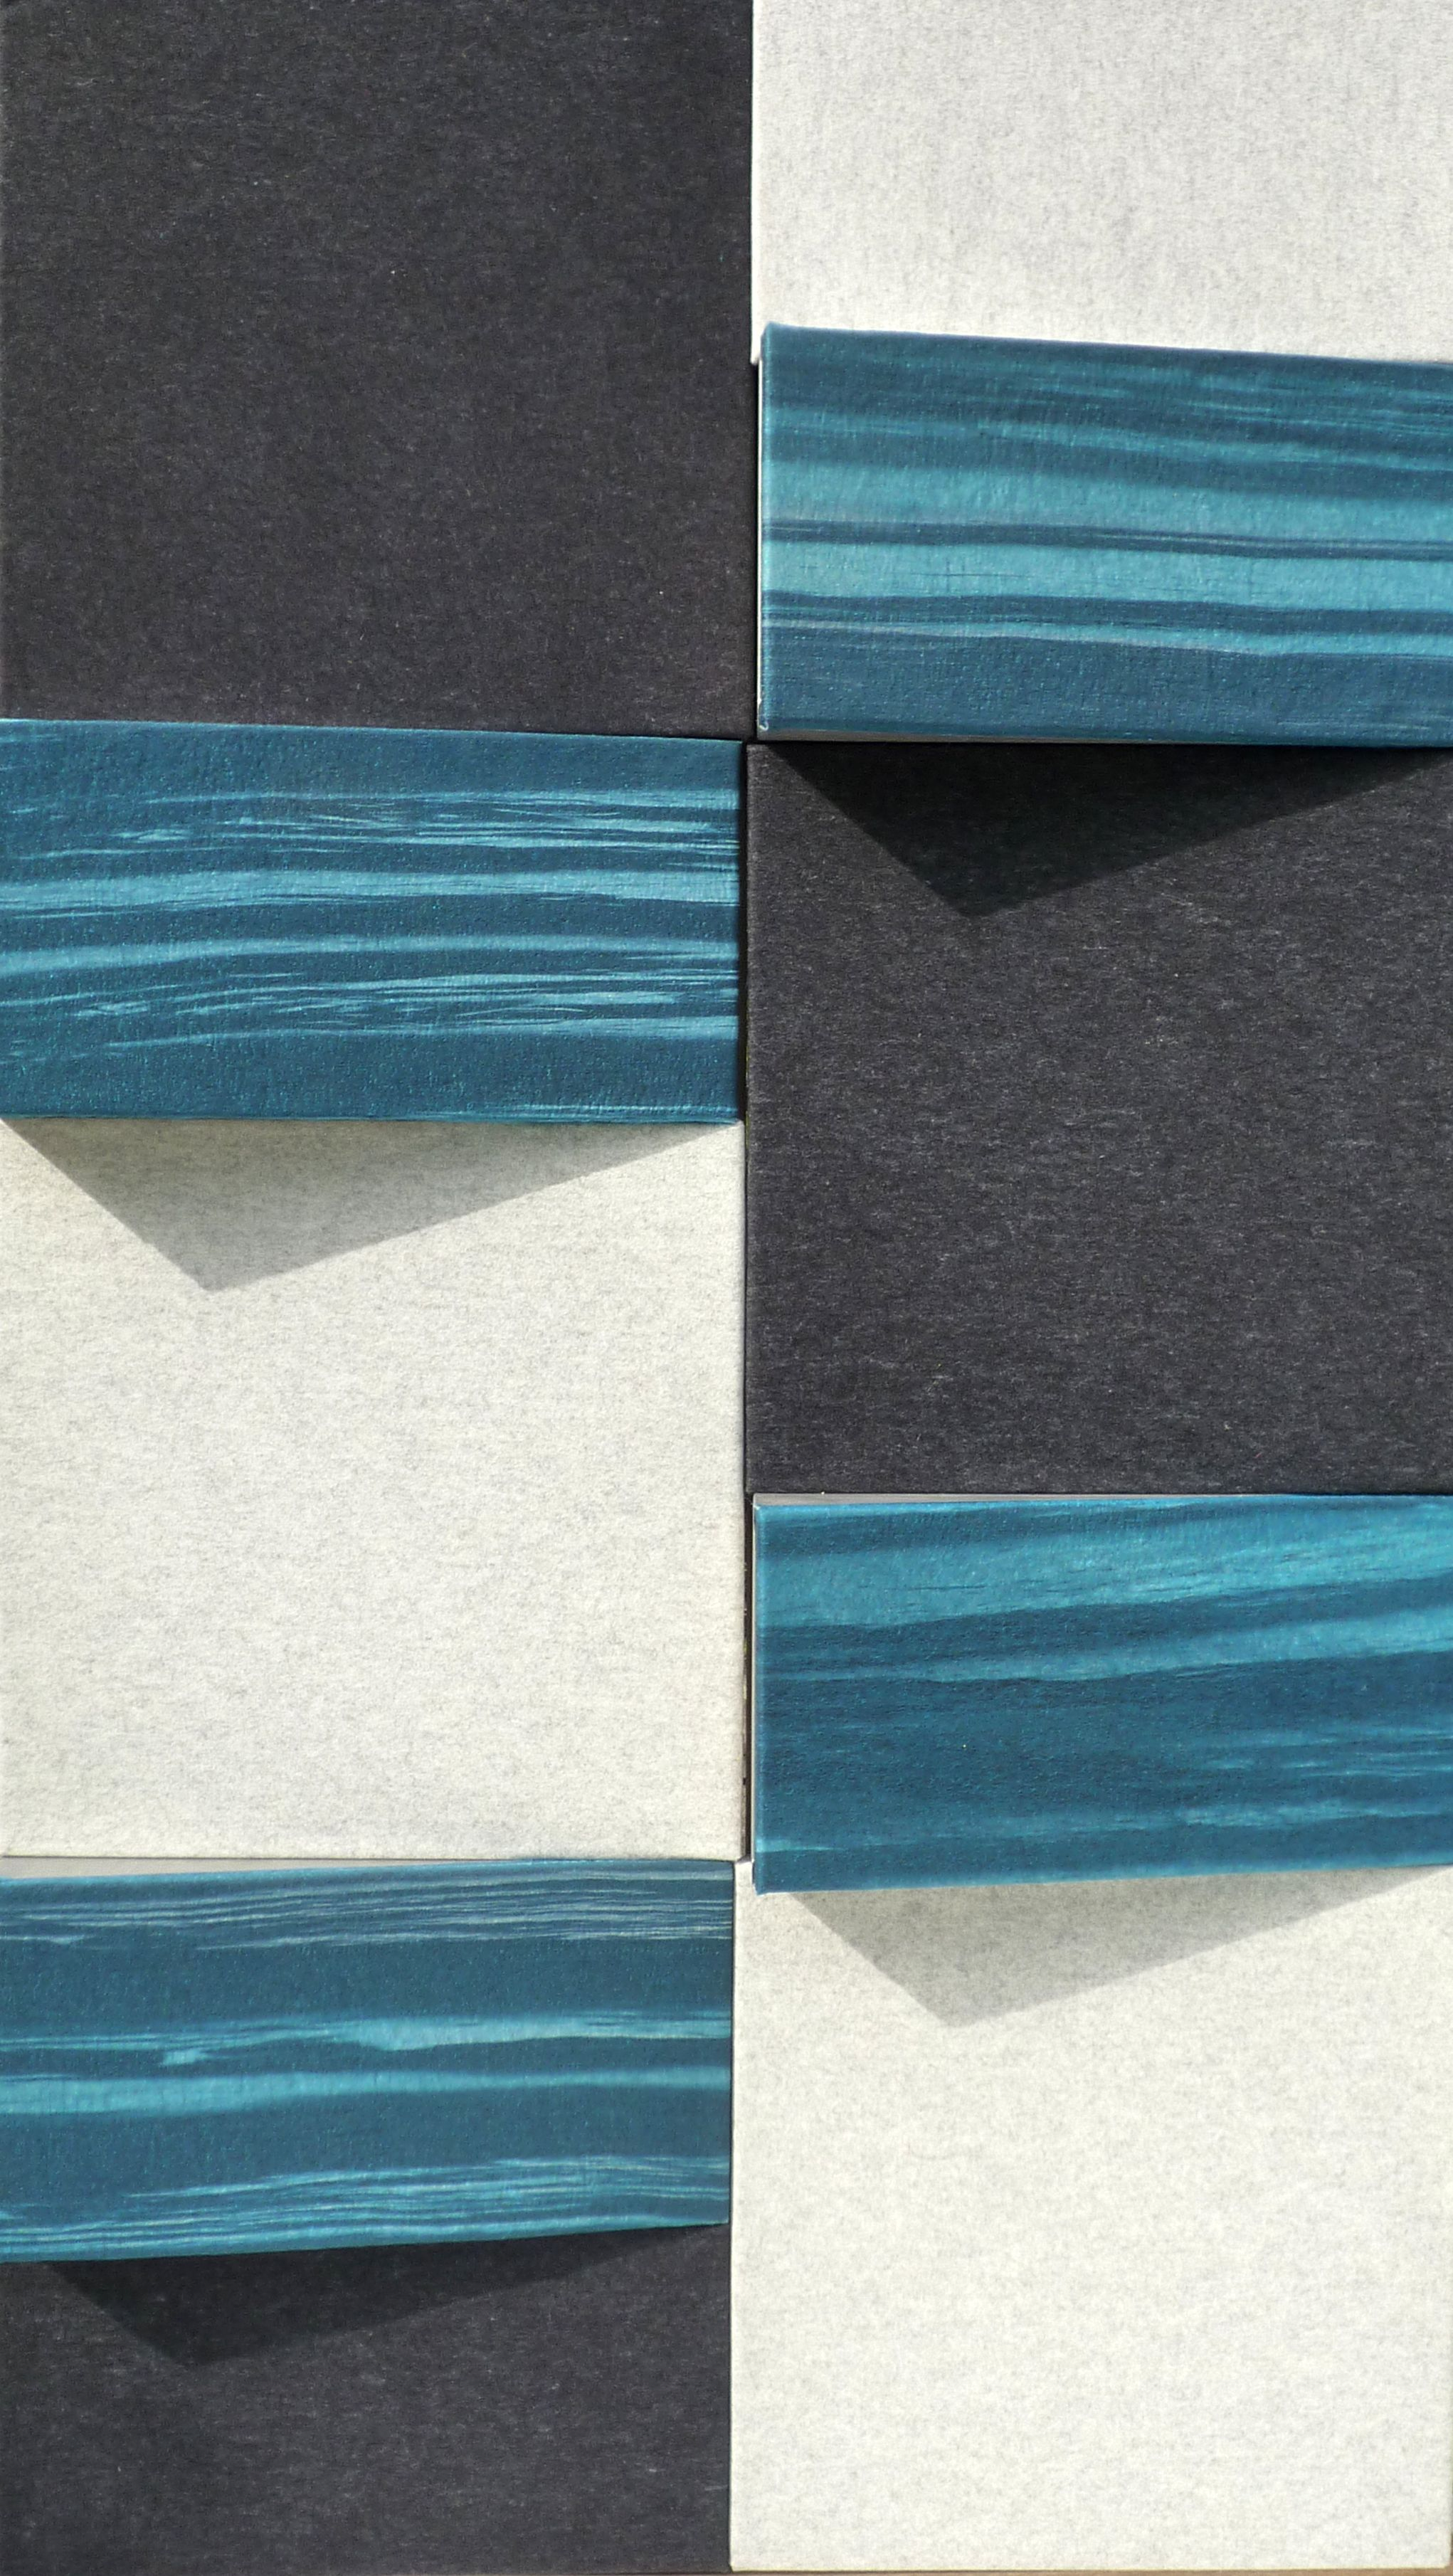 Wedges bespoke acoustic panel design by Gill Hewitt. Sound absorbing ...